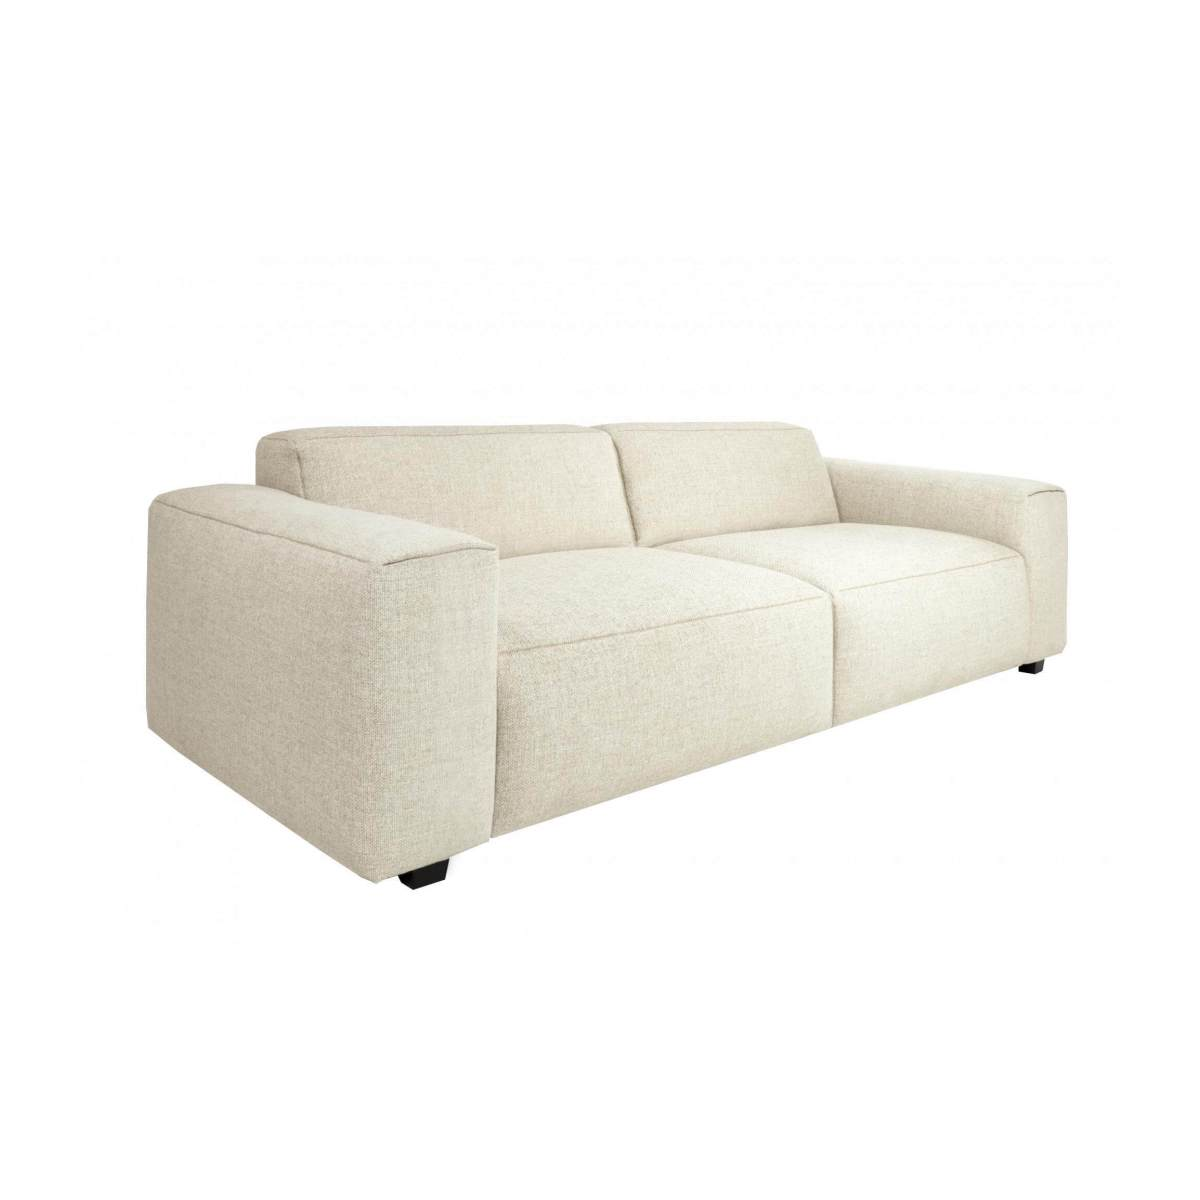 4 seater sofa in Lecce fabric, nature n°3